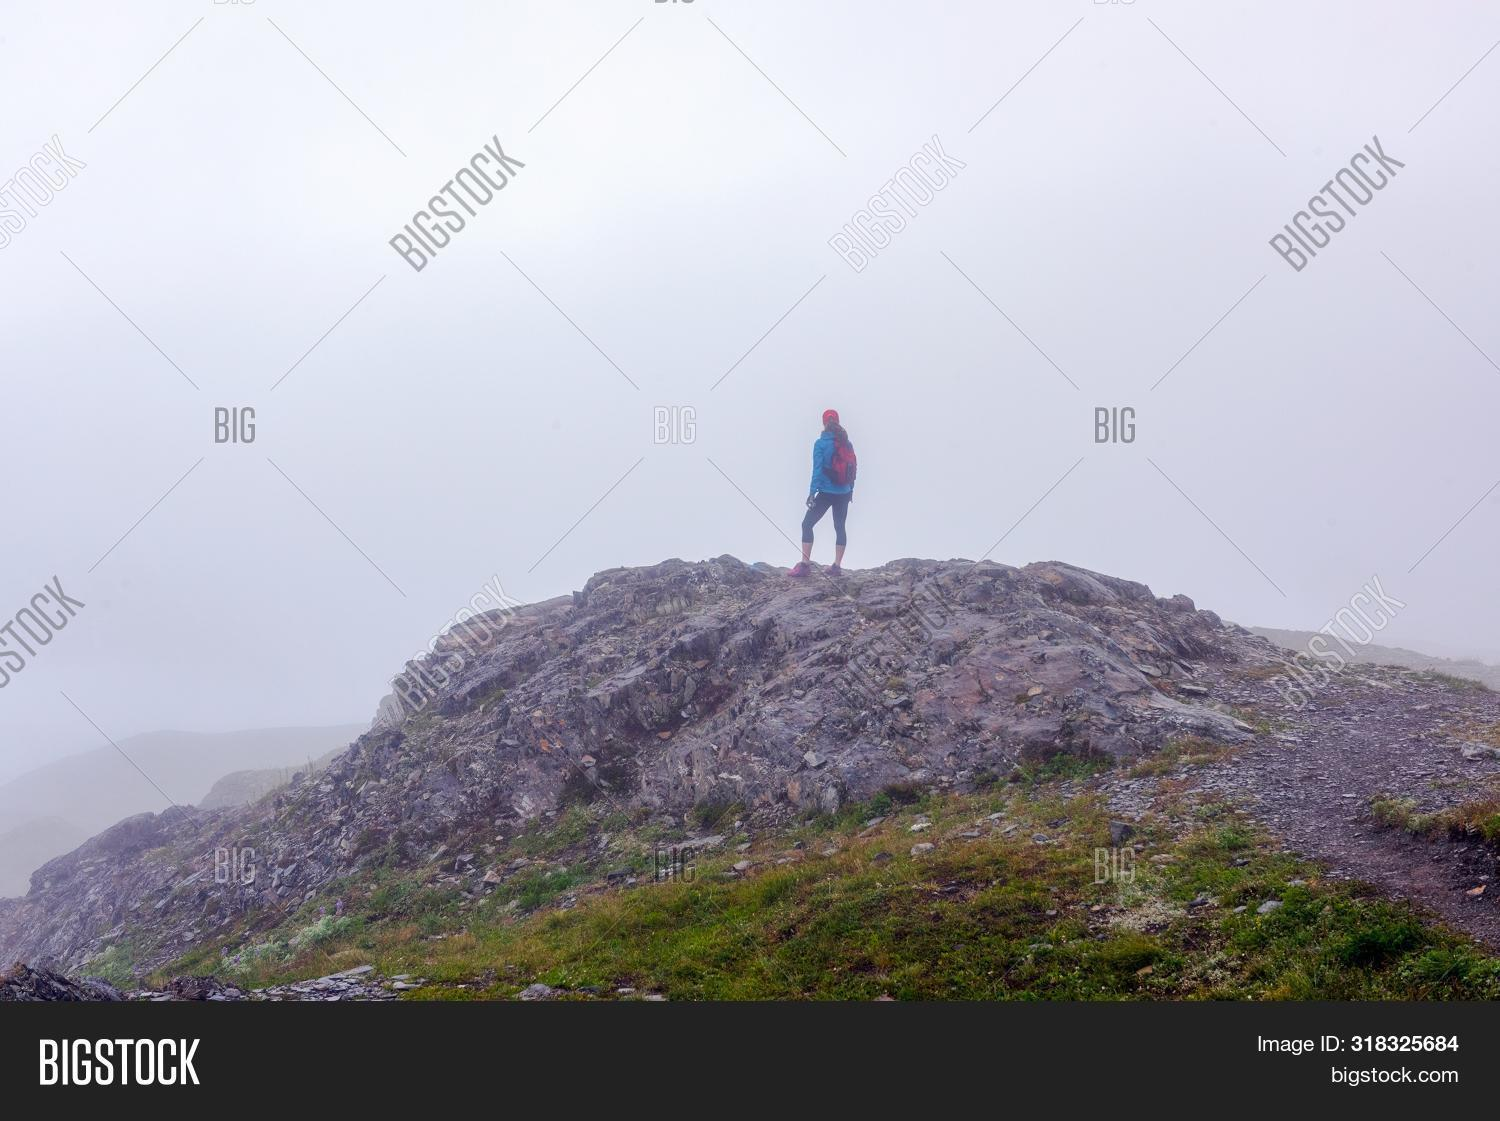 adventure,alaska,alone,america,background,beautiful,change,climate,climbing,clouds,element,exercise,exit,field,fjords,fog,freedom,geology,glacier,harding,hike,hiker,hiking,human,ice,kenai,mountain,national,nature,north,outdoors,park,peak,rock,rocky,scenery,solitude,summer,tourism,tourist,trail,travel,trekking,two,usa,view,weather,woman,young